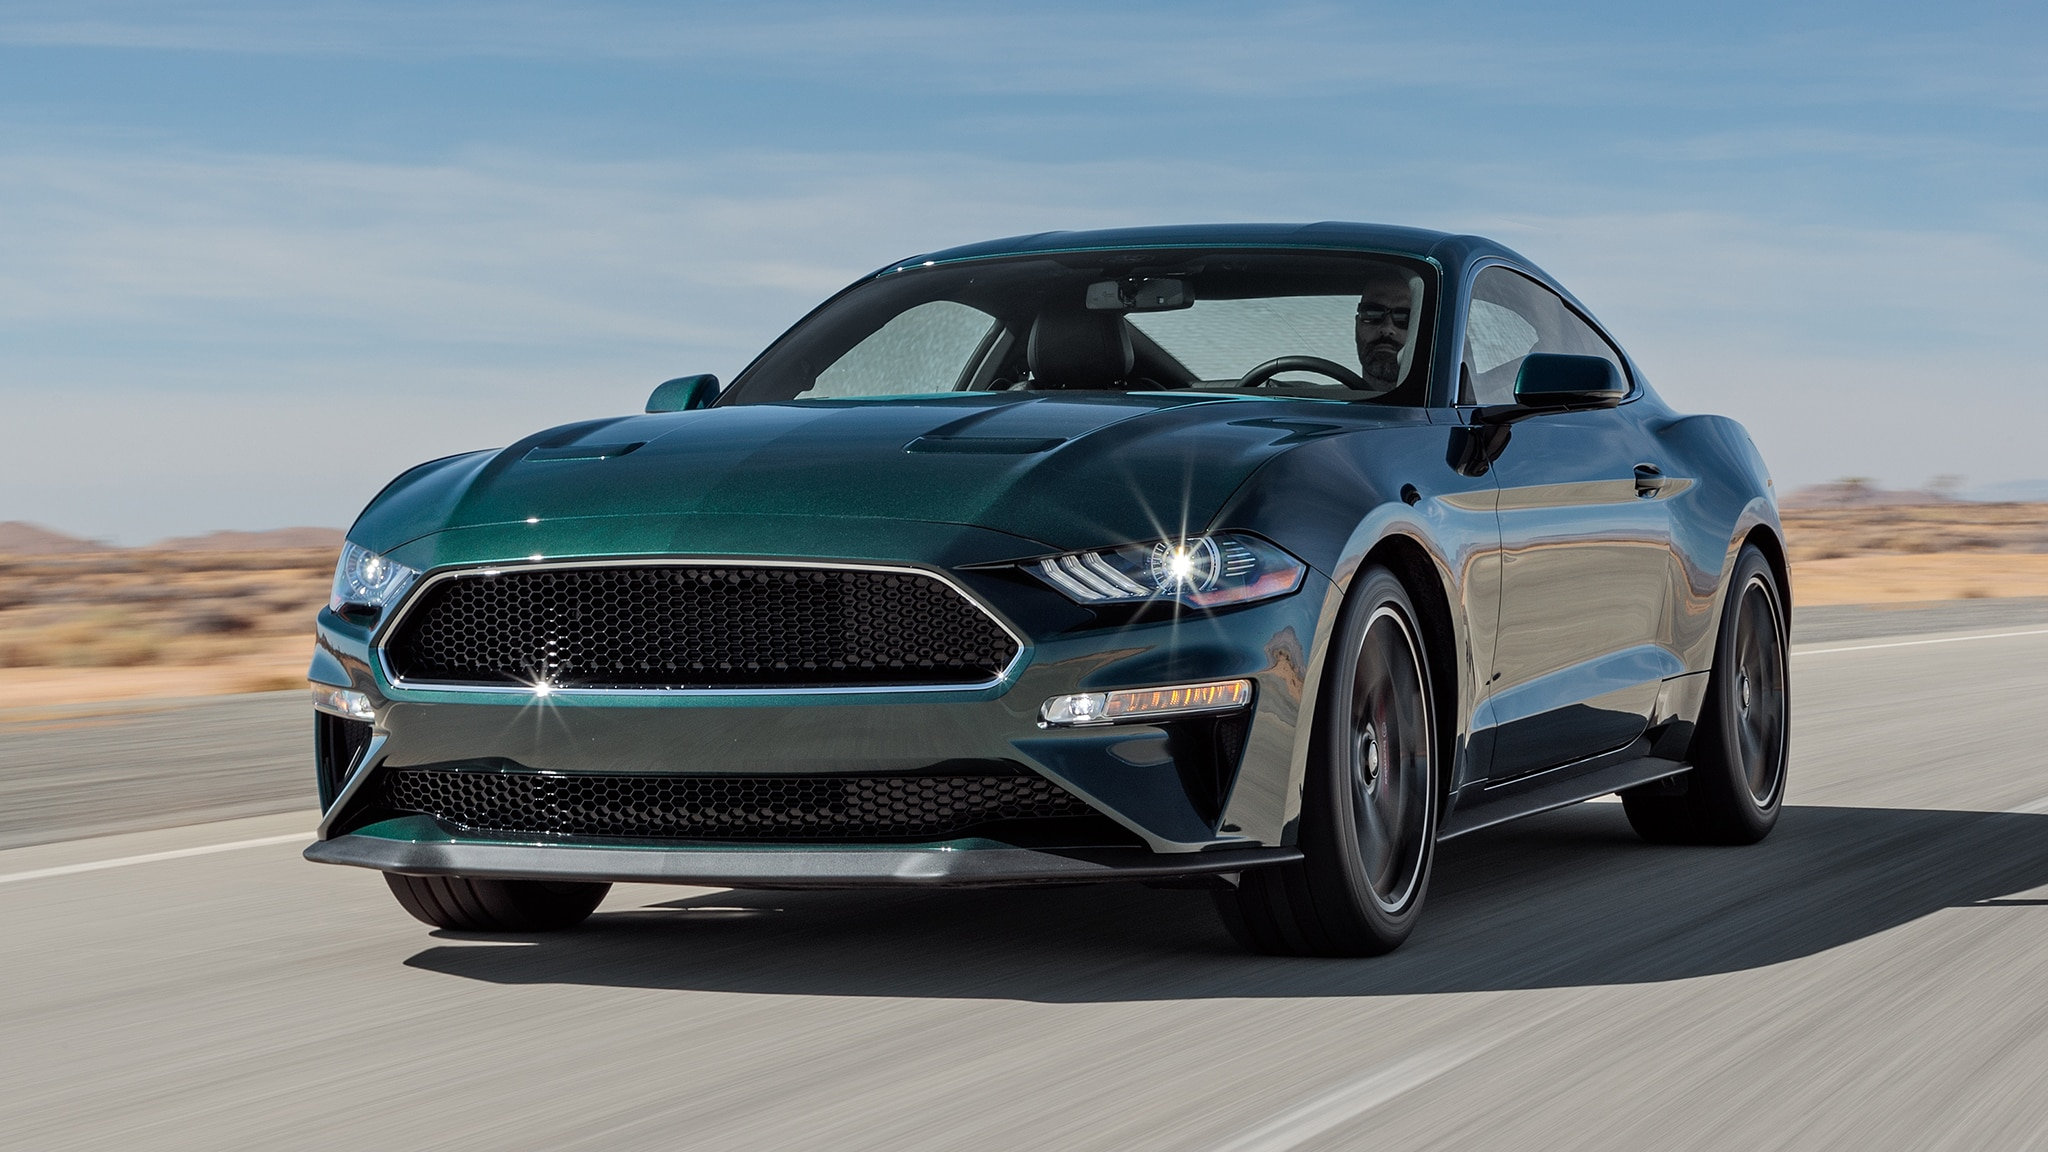 2019 Ford Mustang Bullitt Front Three Quarter In Motion 1